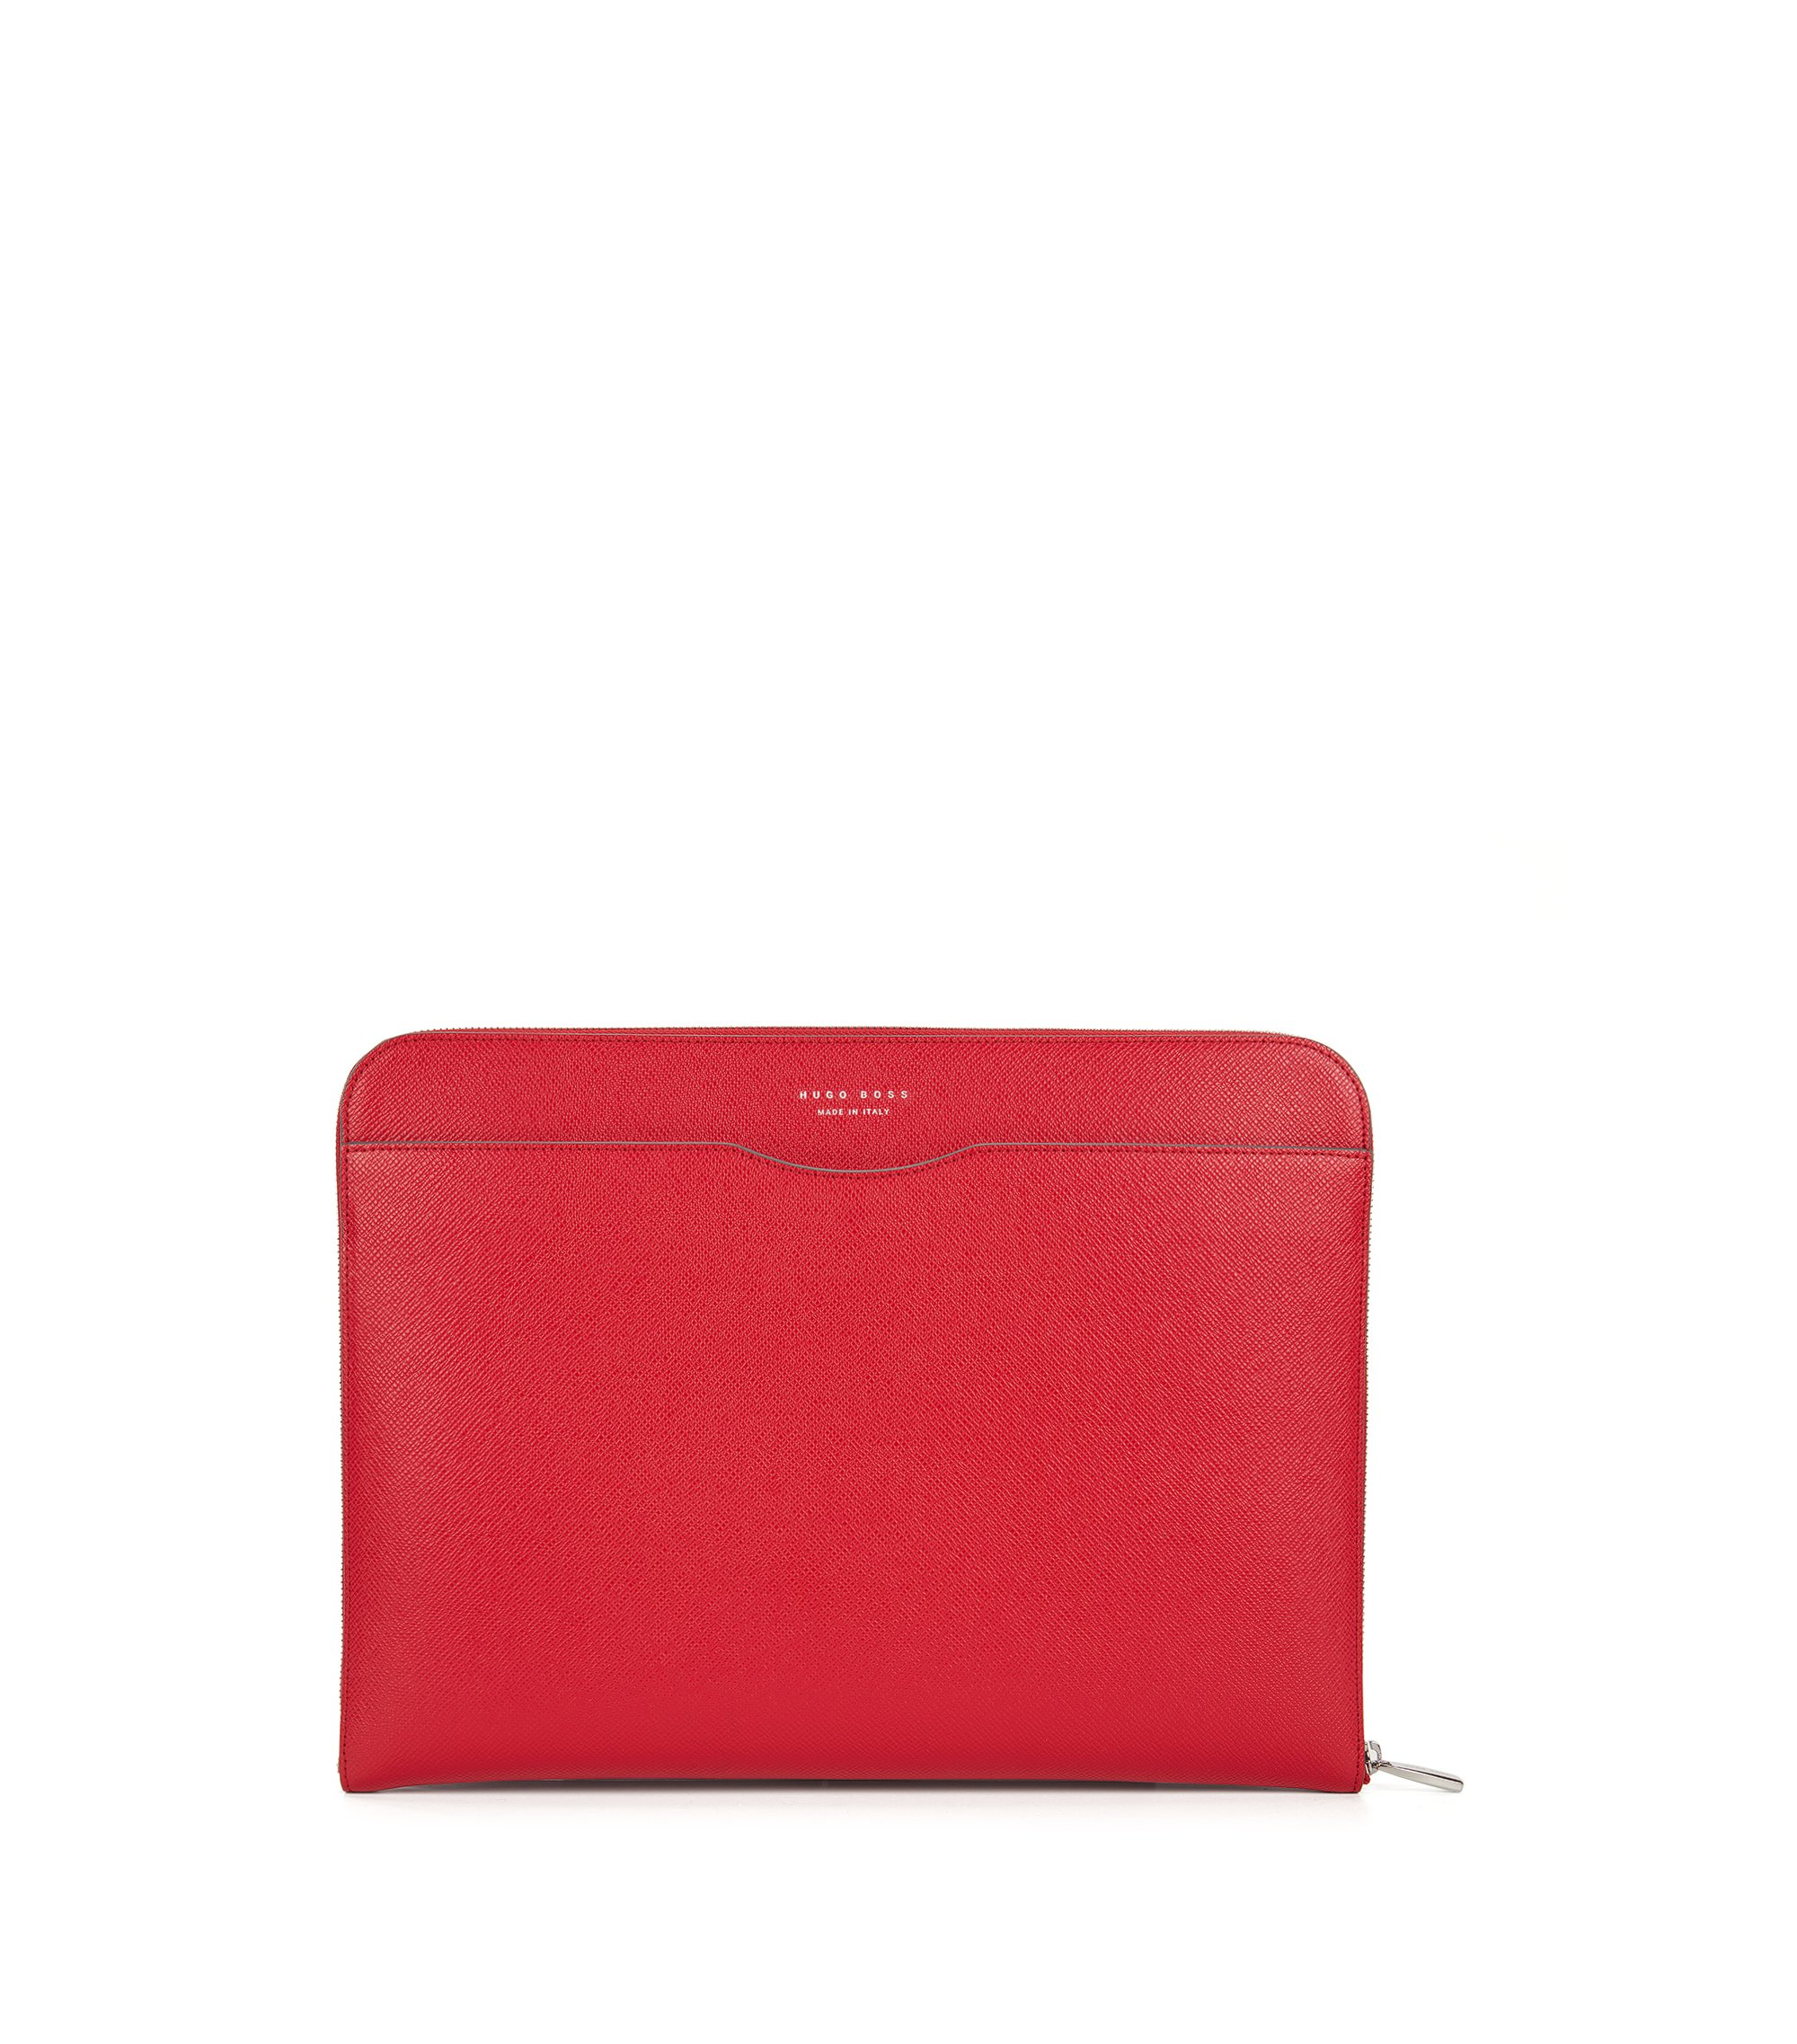 Porte-document de la collection Signature en cuir palmellato, Rouge